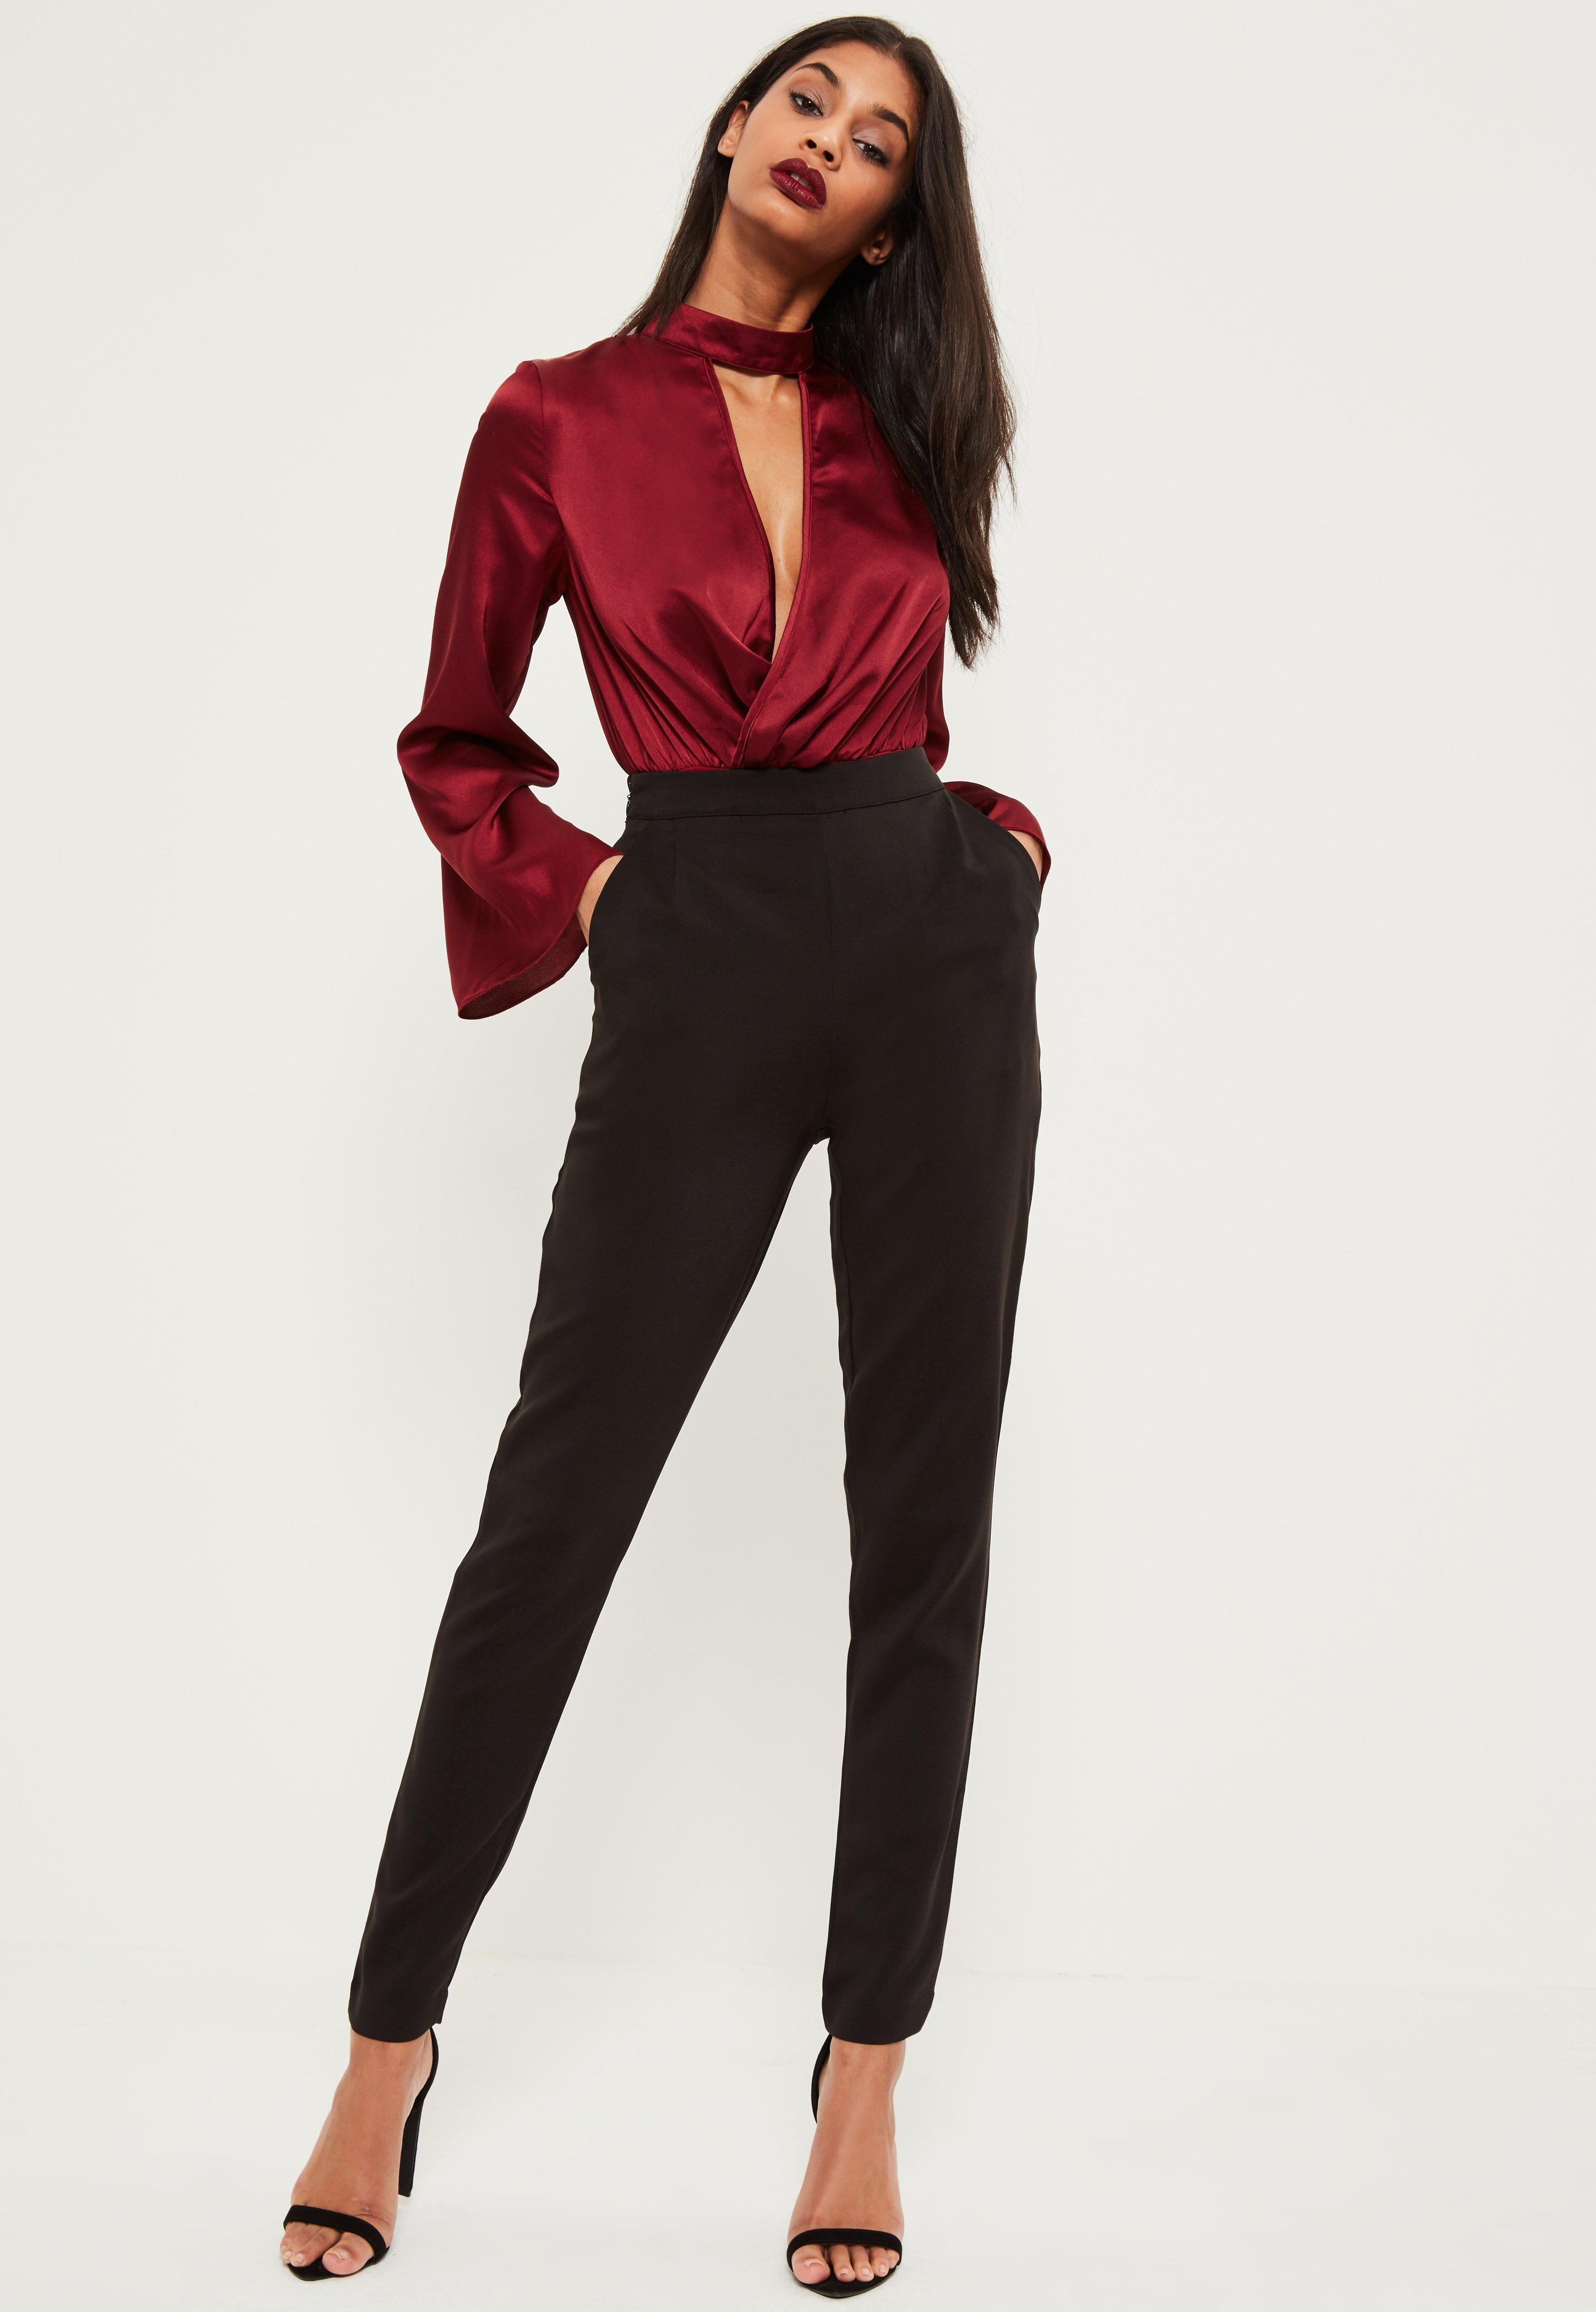 Cigarette Trousers - Black Missguided Tall Outlet Cheap Authentic Fast Delivery 2018 Sale Online Clearance Websites Pictures Cheap Price PmyVV229F